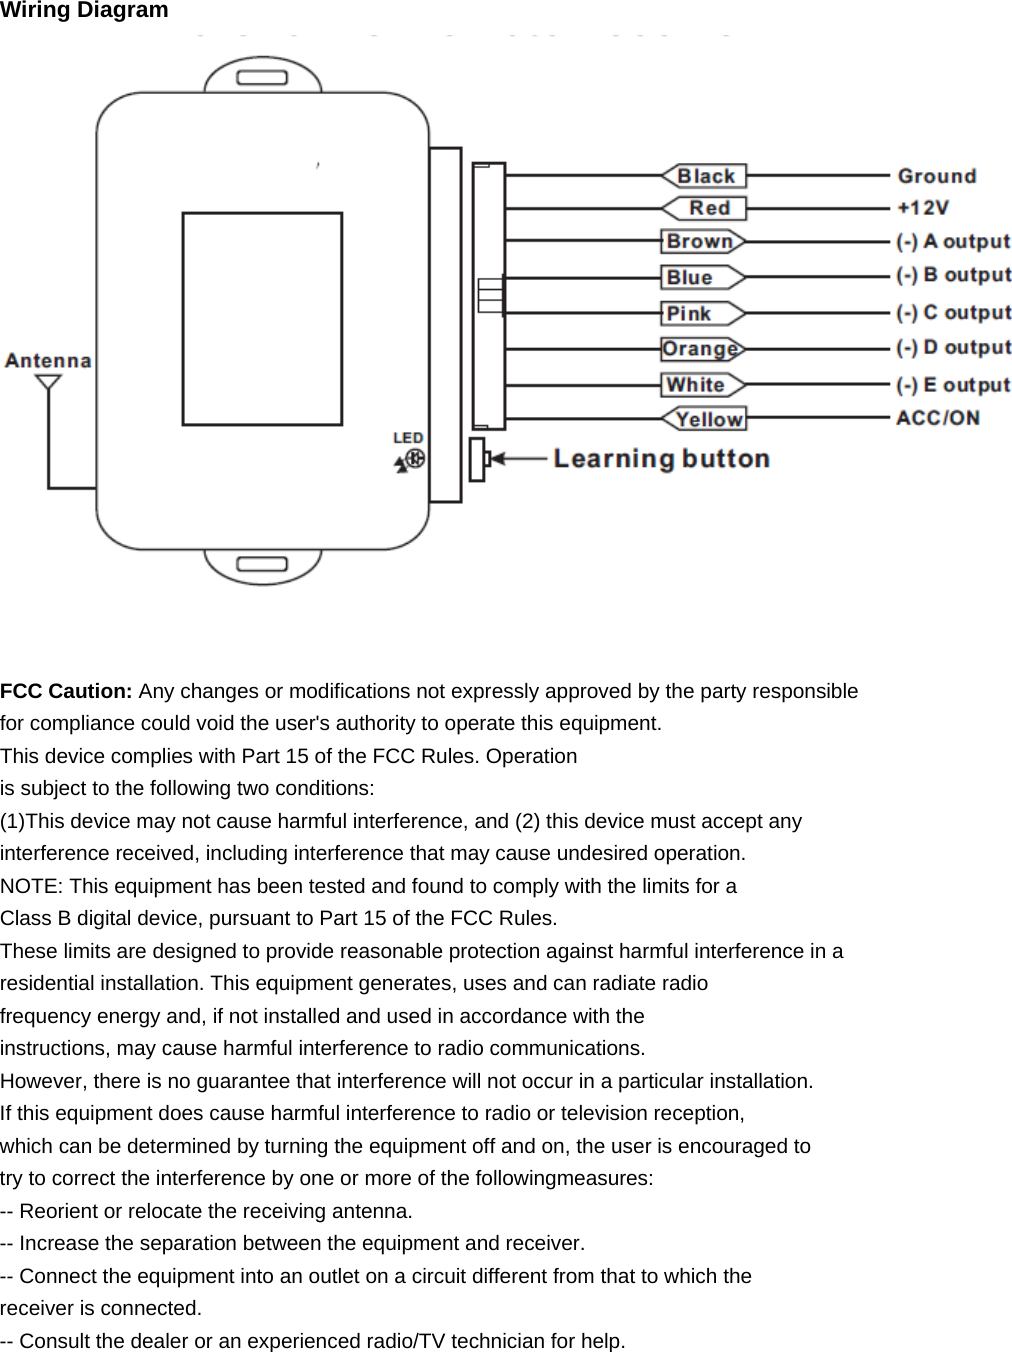 Door Popper Relay Wiring Diagram from usermanual.wiki